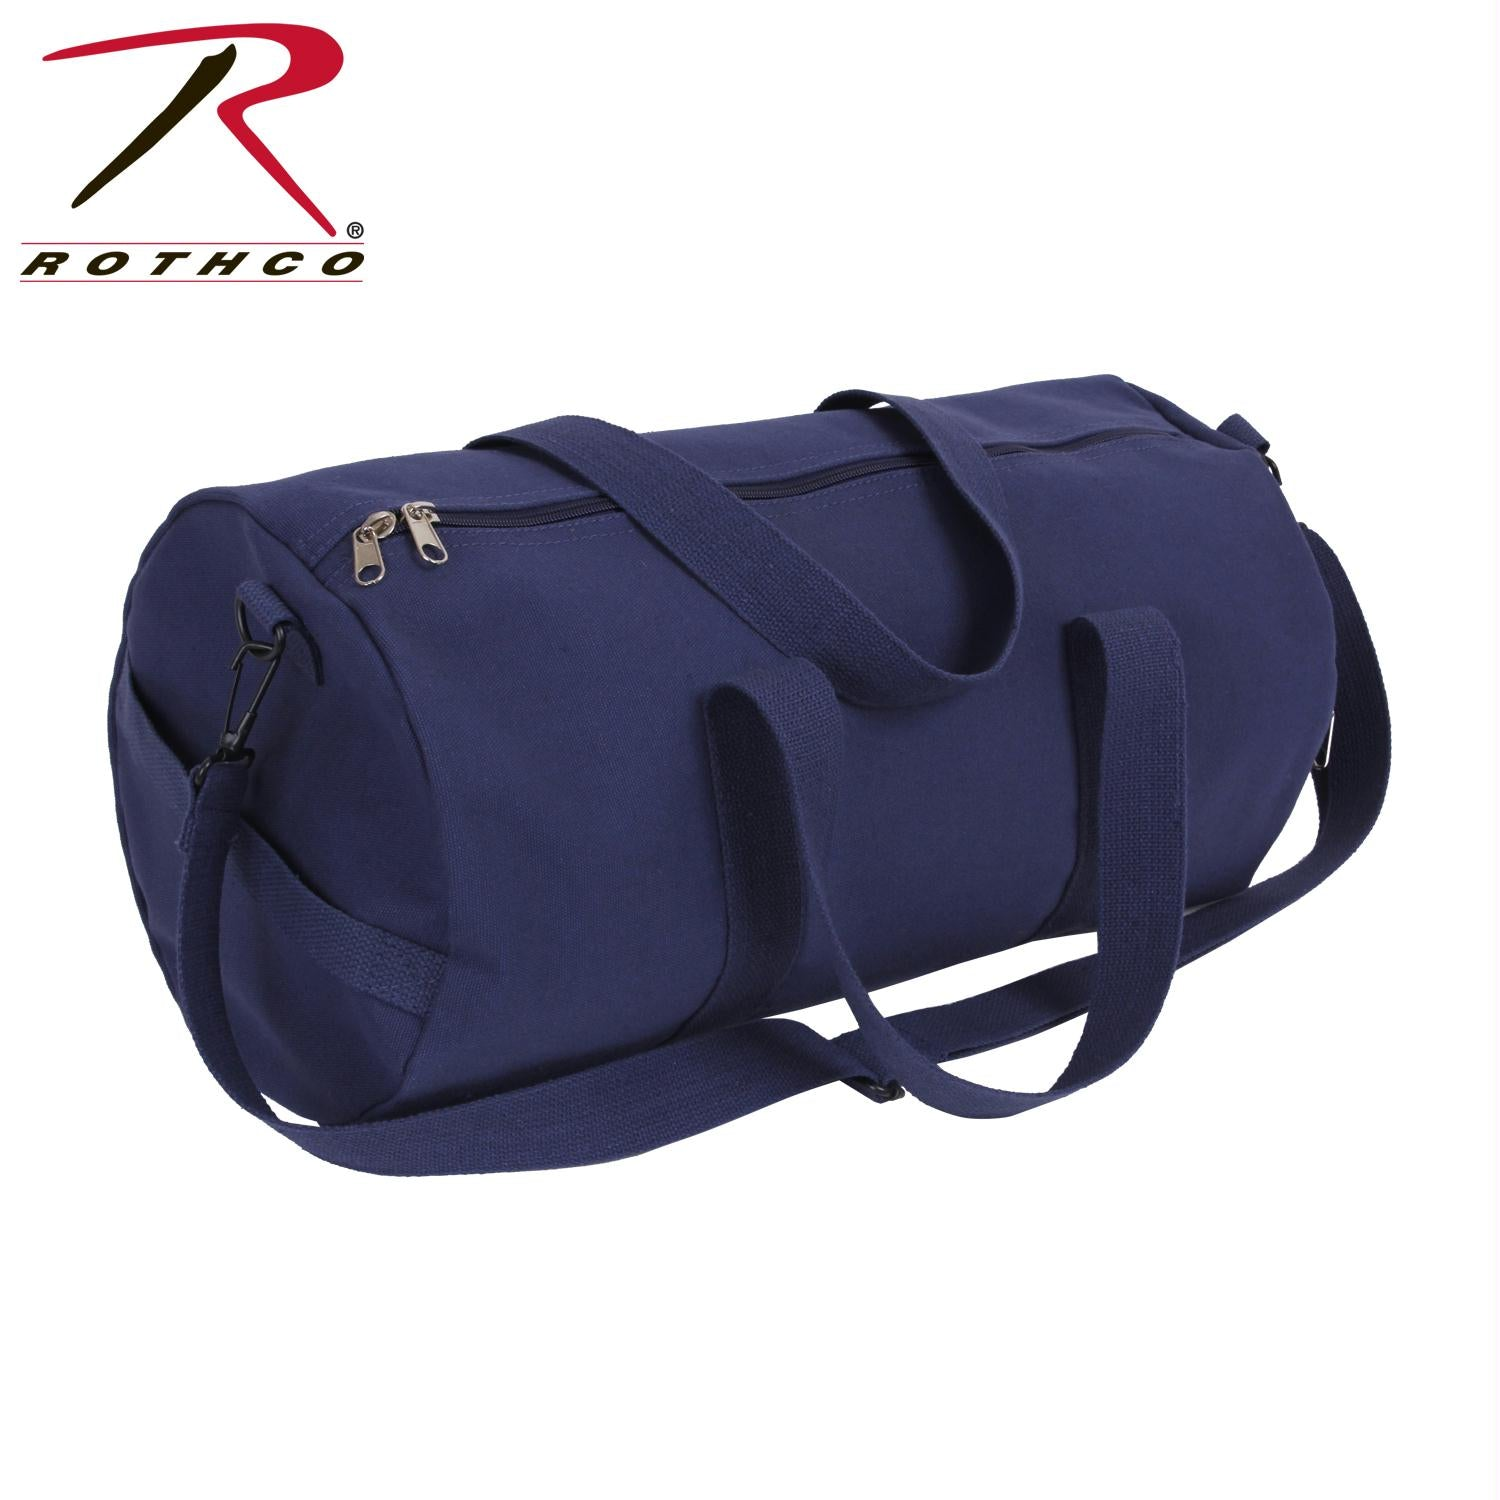 Rothco Canvas Shoulder Bag